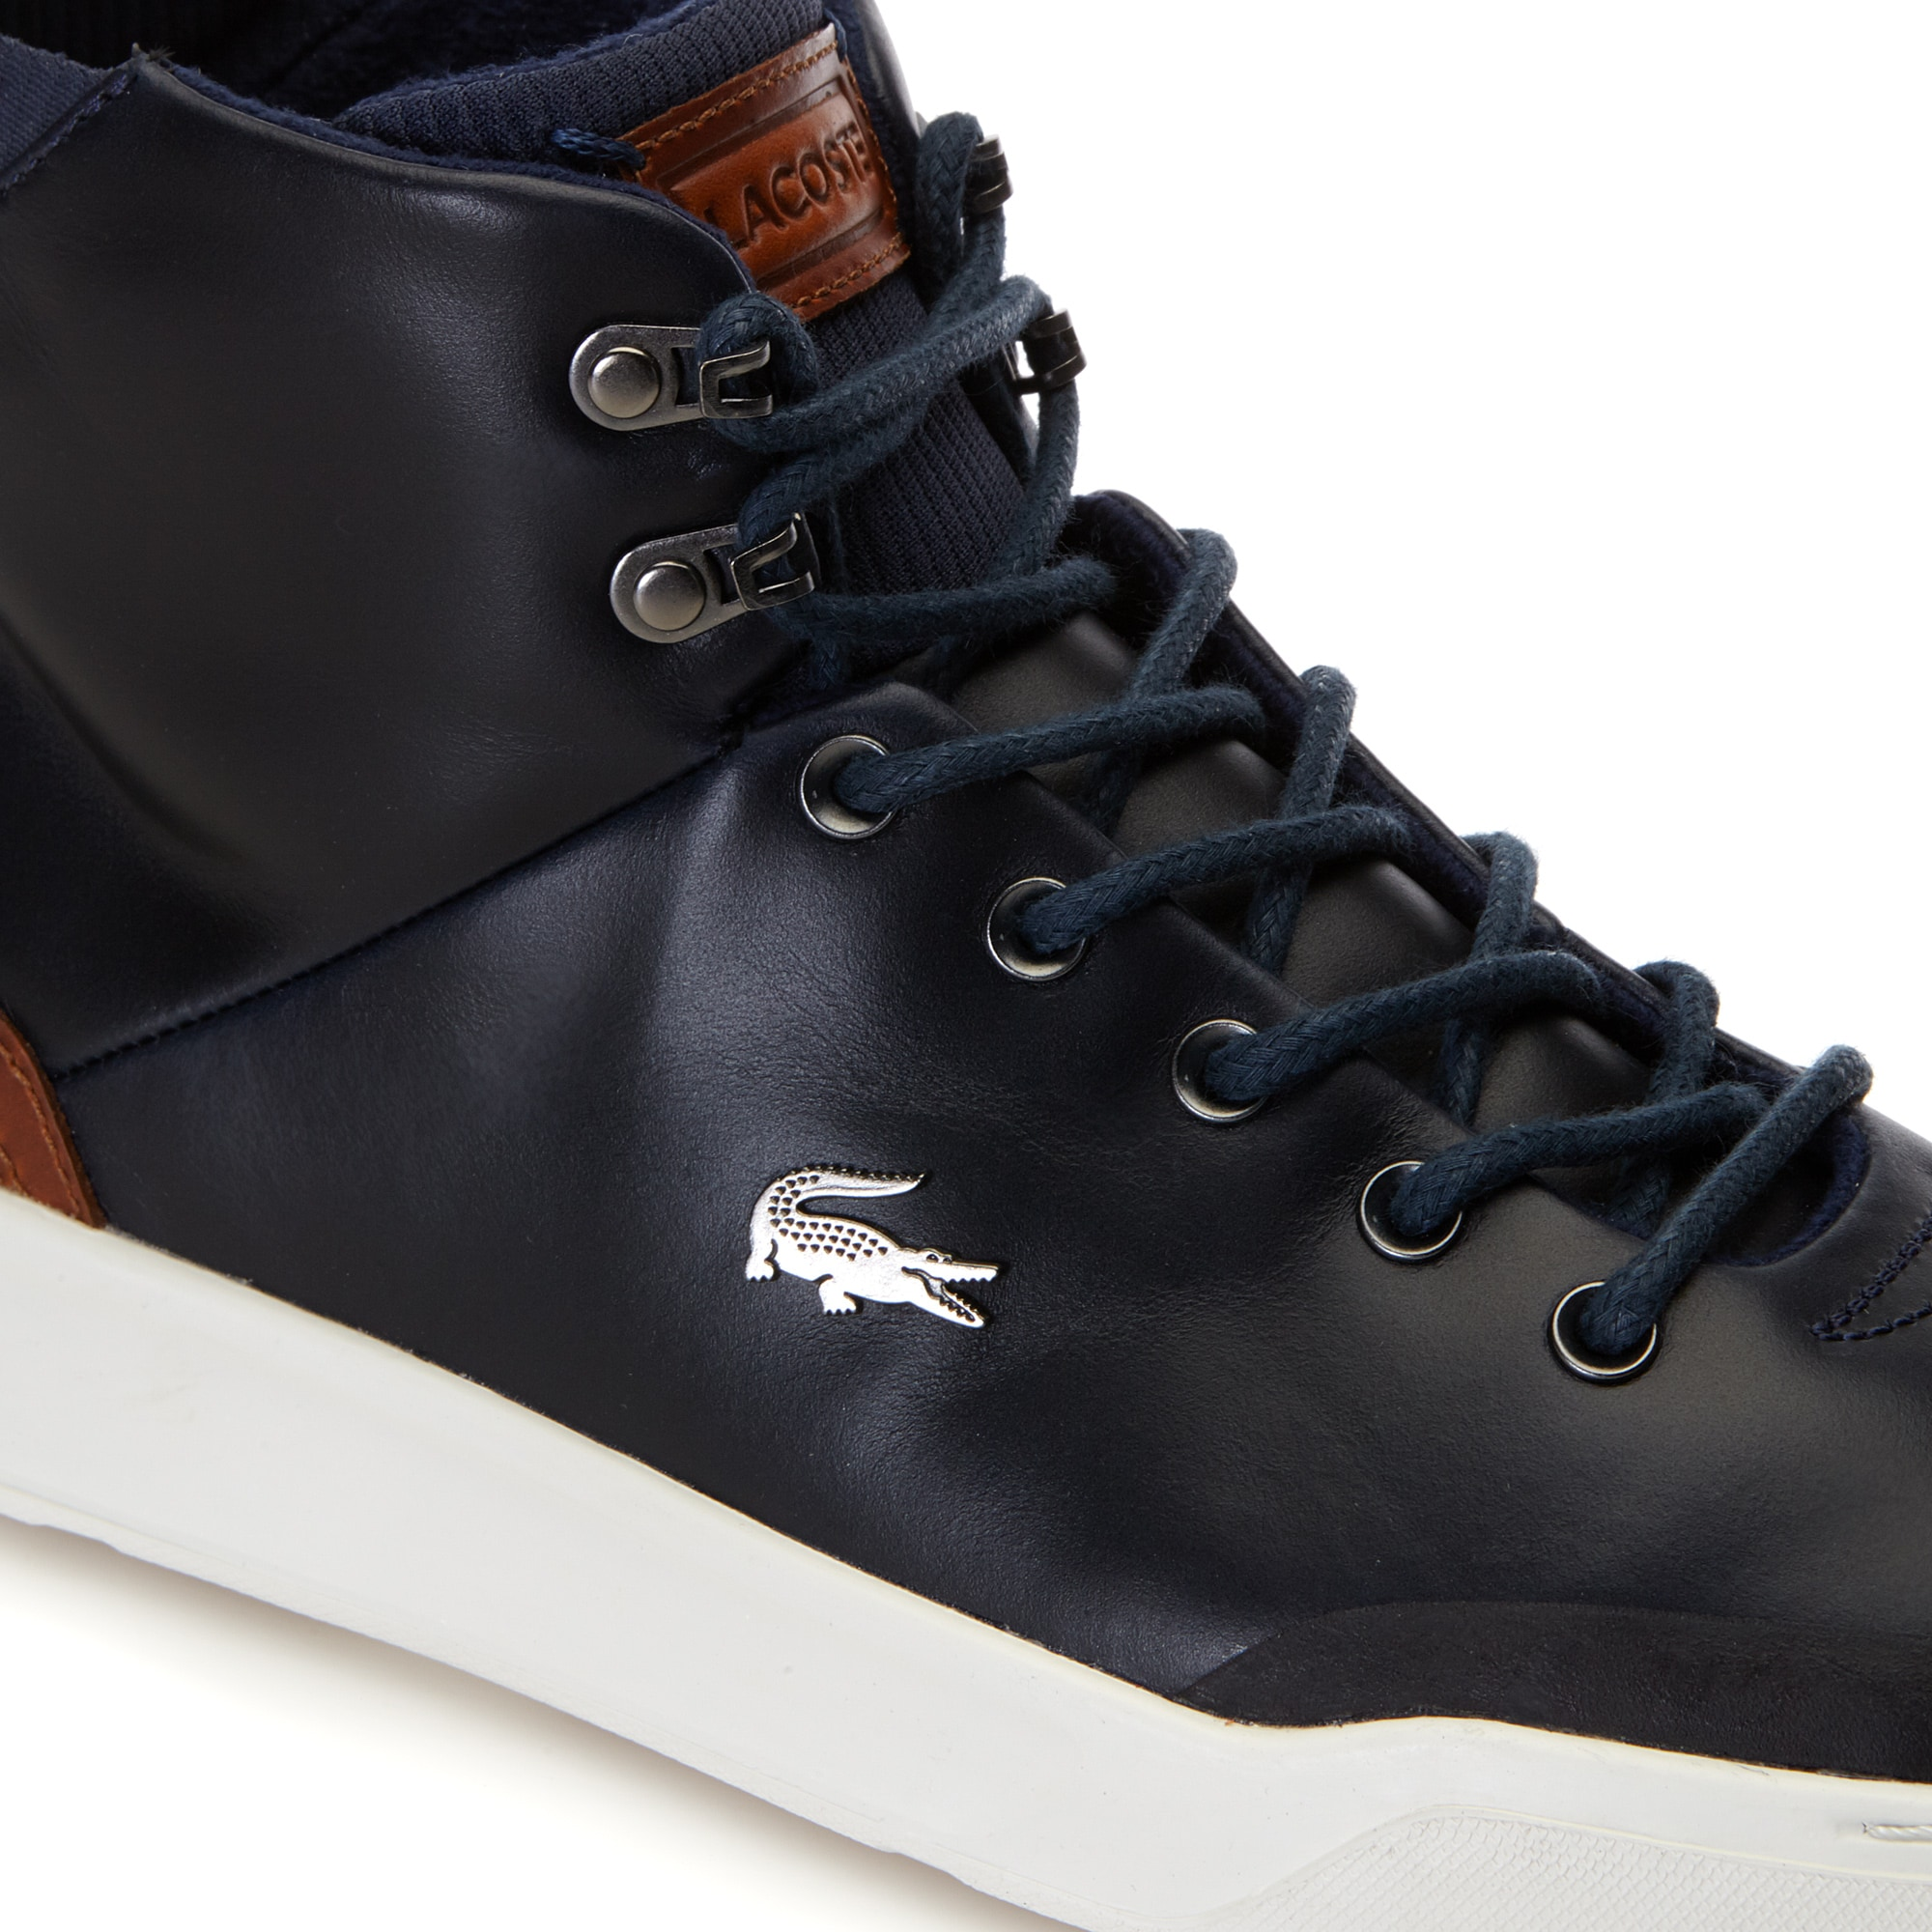 Men's Explorateur Classic High-top Leather Trainers